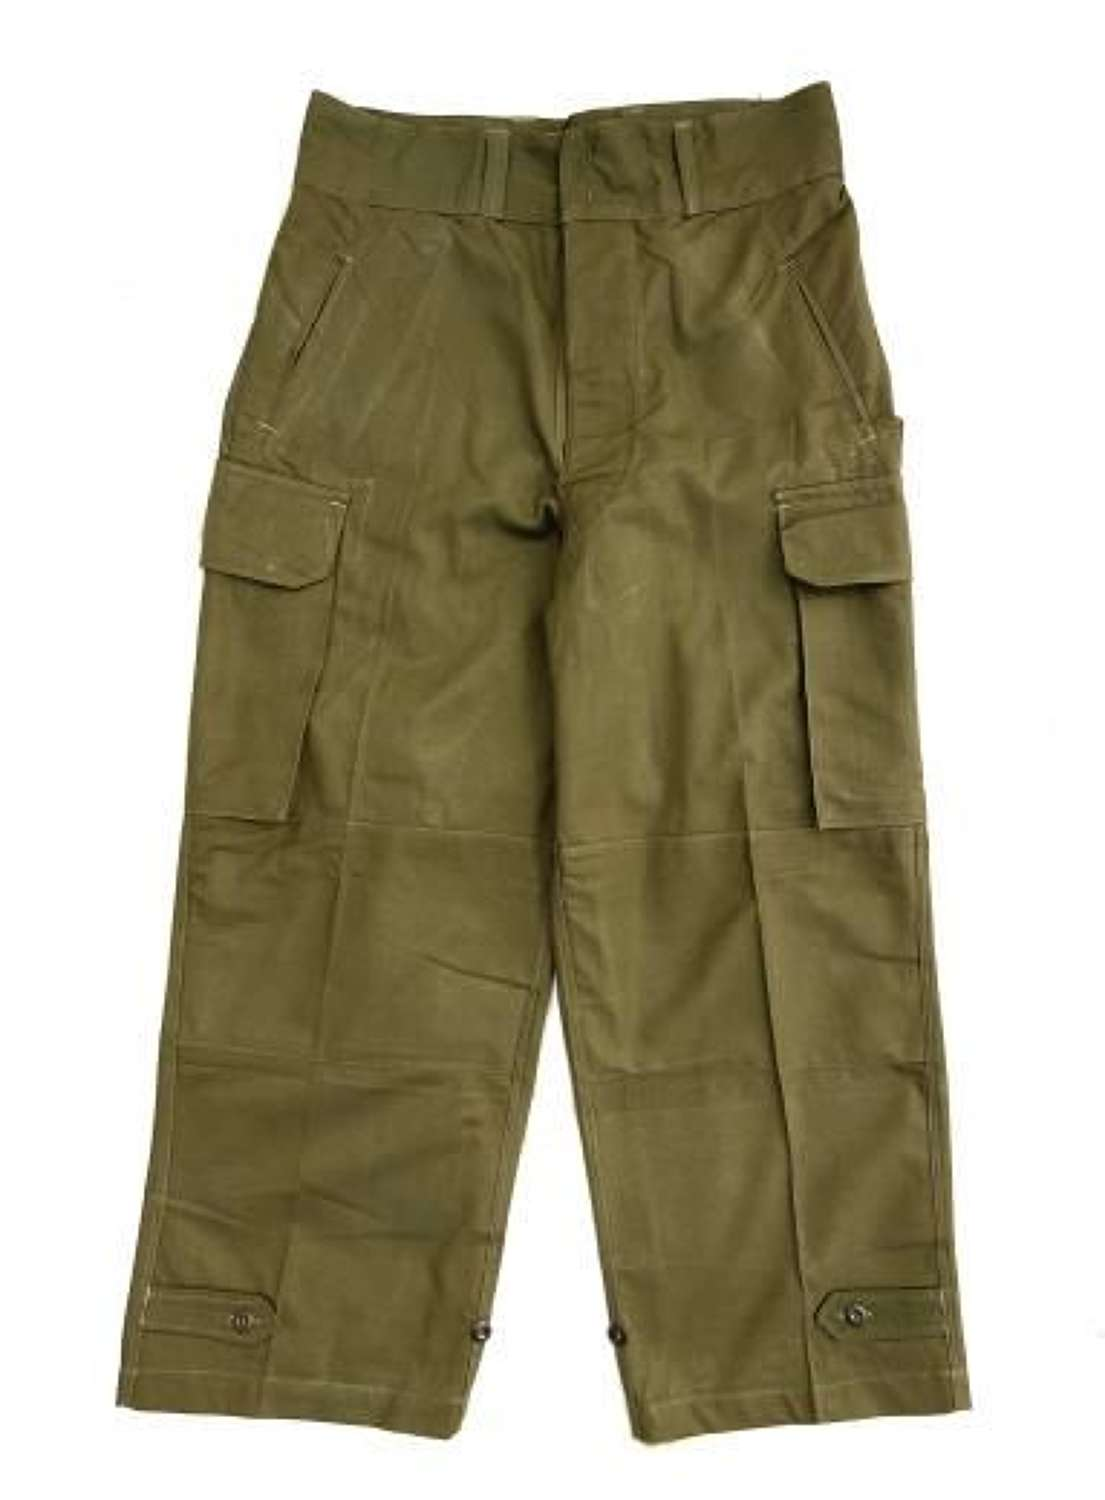 Original French Army M1947 Trousers (2)